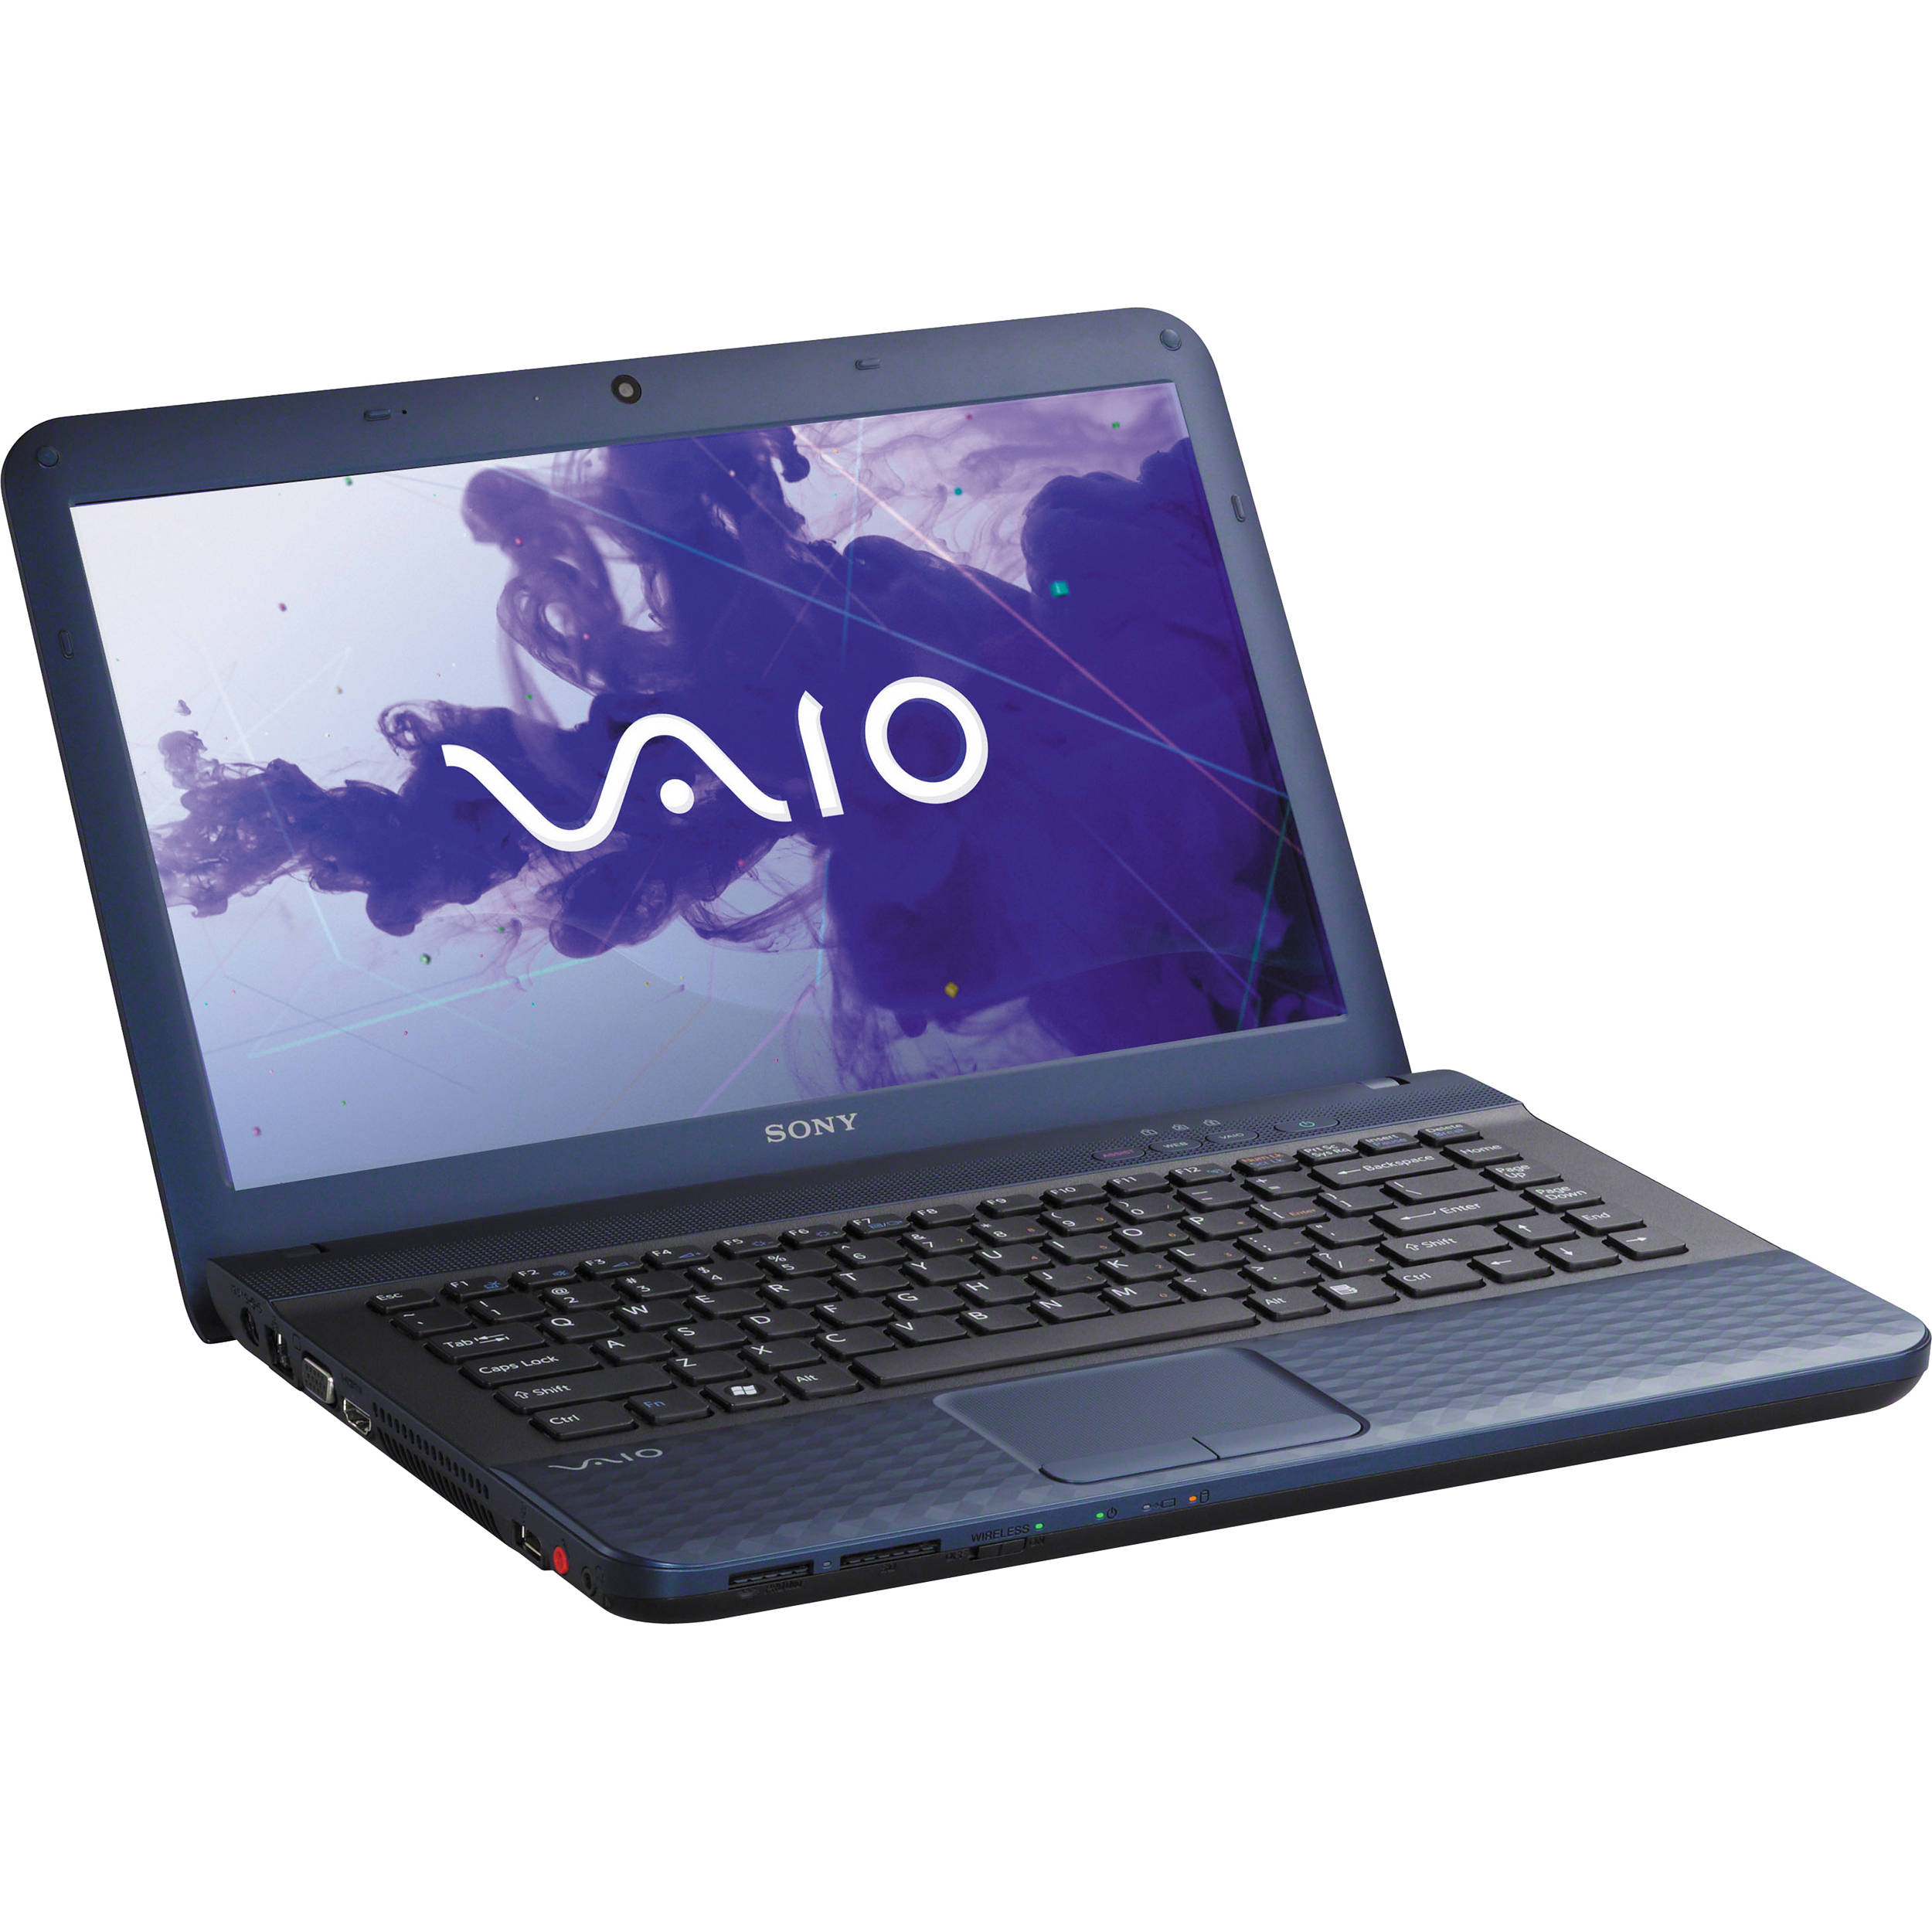 Sony Vaio VPCEG33FXL Drivers Download